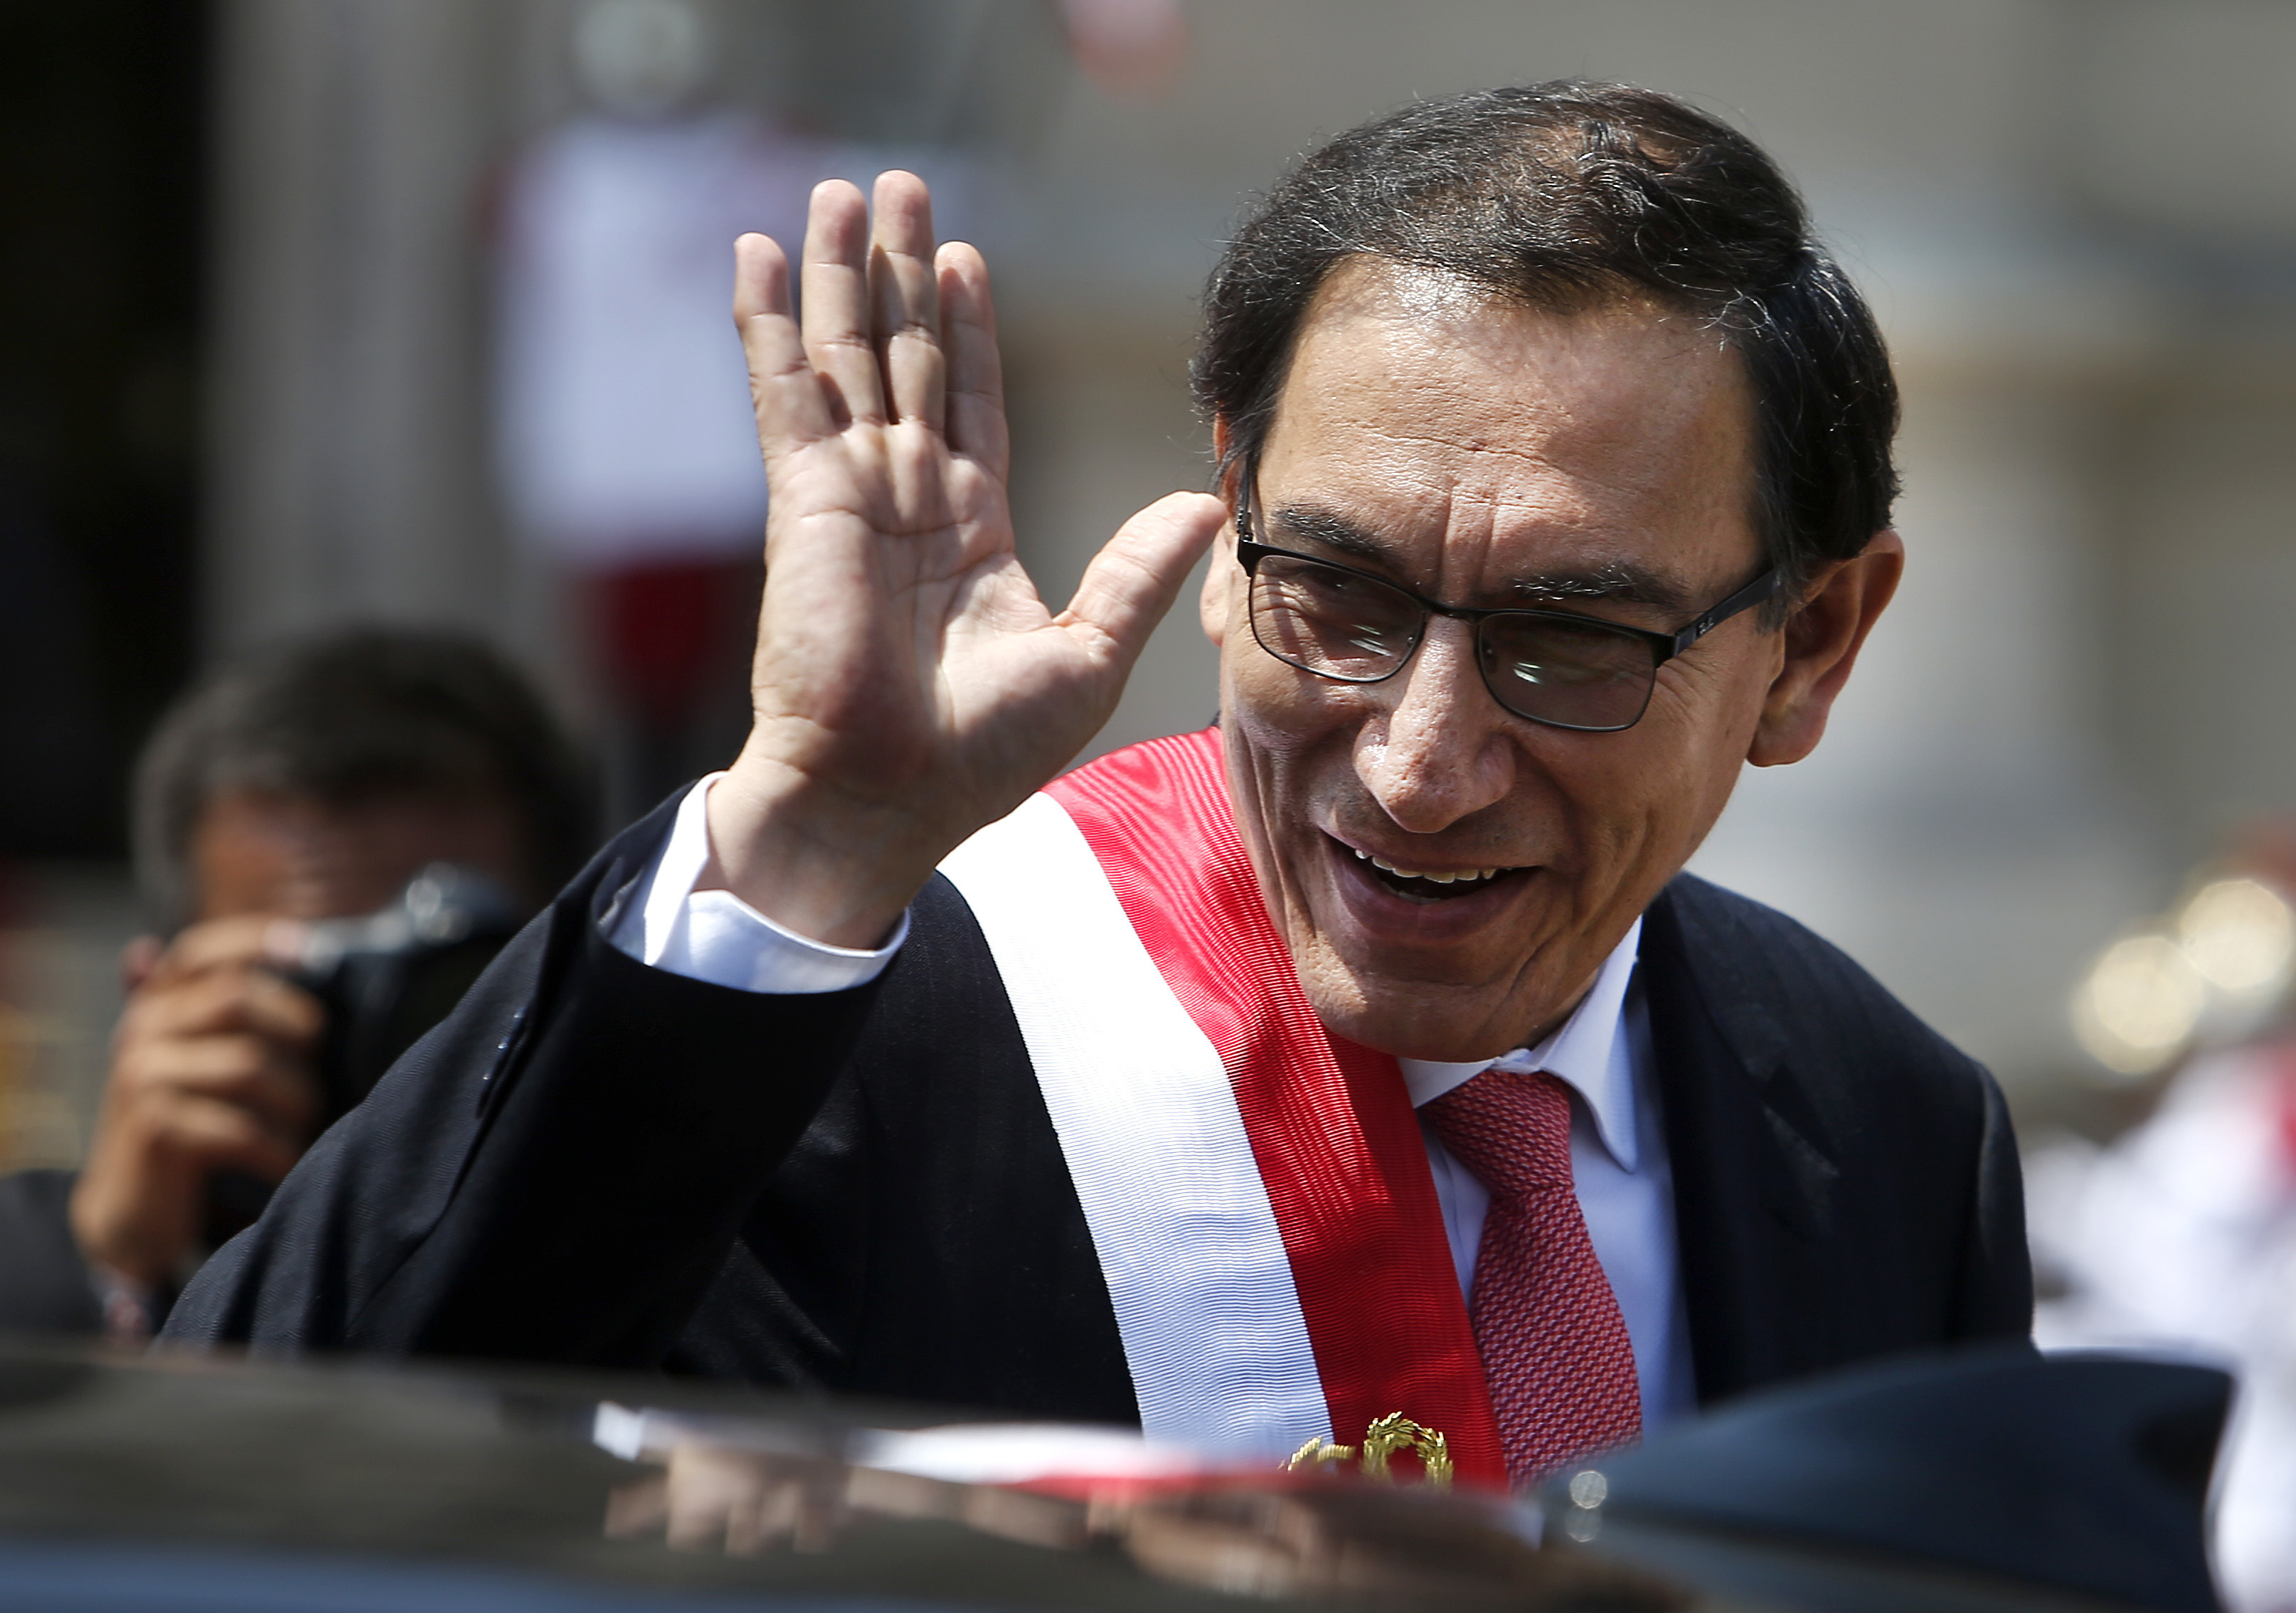 Martin Vizcarra is now Peru's new President